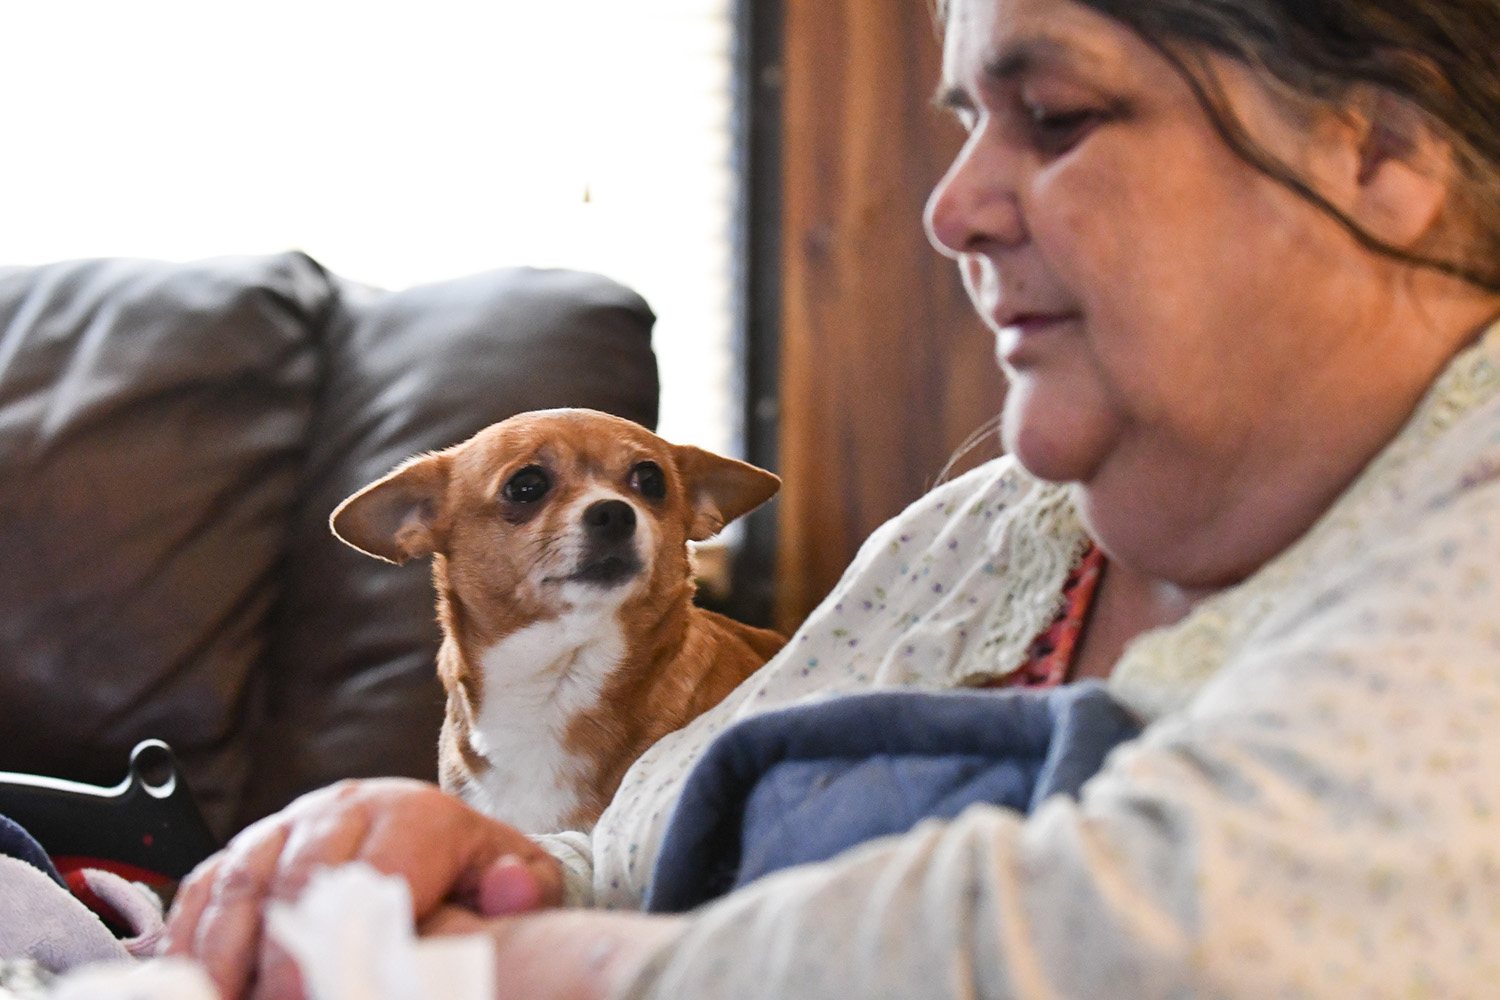 Snookie, a 7-year-old Chihuahua mix, drops her ears as she listens to her owner Terry Allen talk about the Feb. 2 fatal trailer fire, at the Airview Trailer Park, in Milan, Illinois, which killed three of their neighbors: Delores R. Martin, 71, Brittany Danielle Mote, 31, and Thomas J. Conley, 9. (Todd Mizener - Dispatch/Argus)